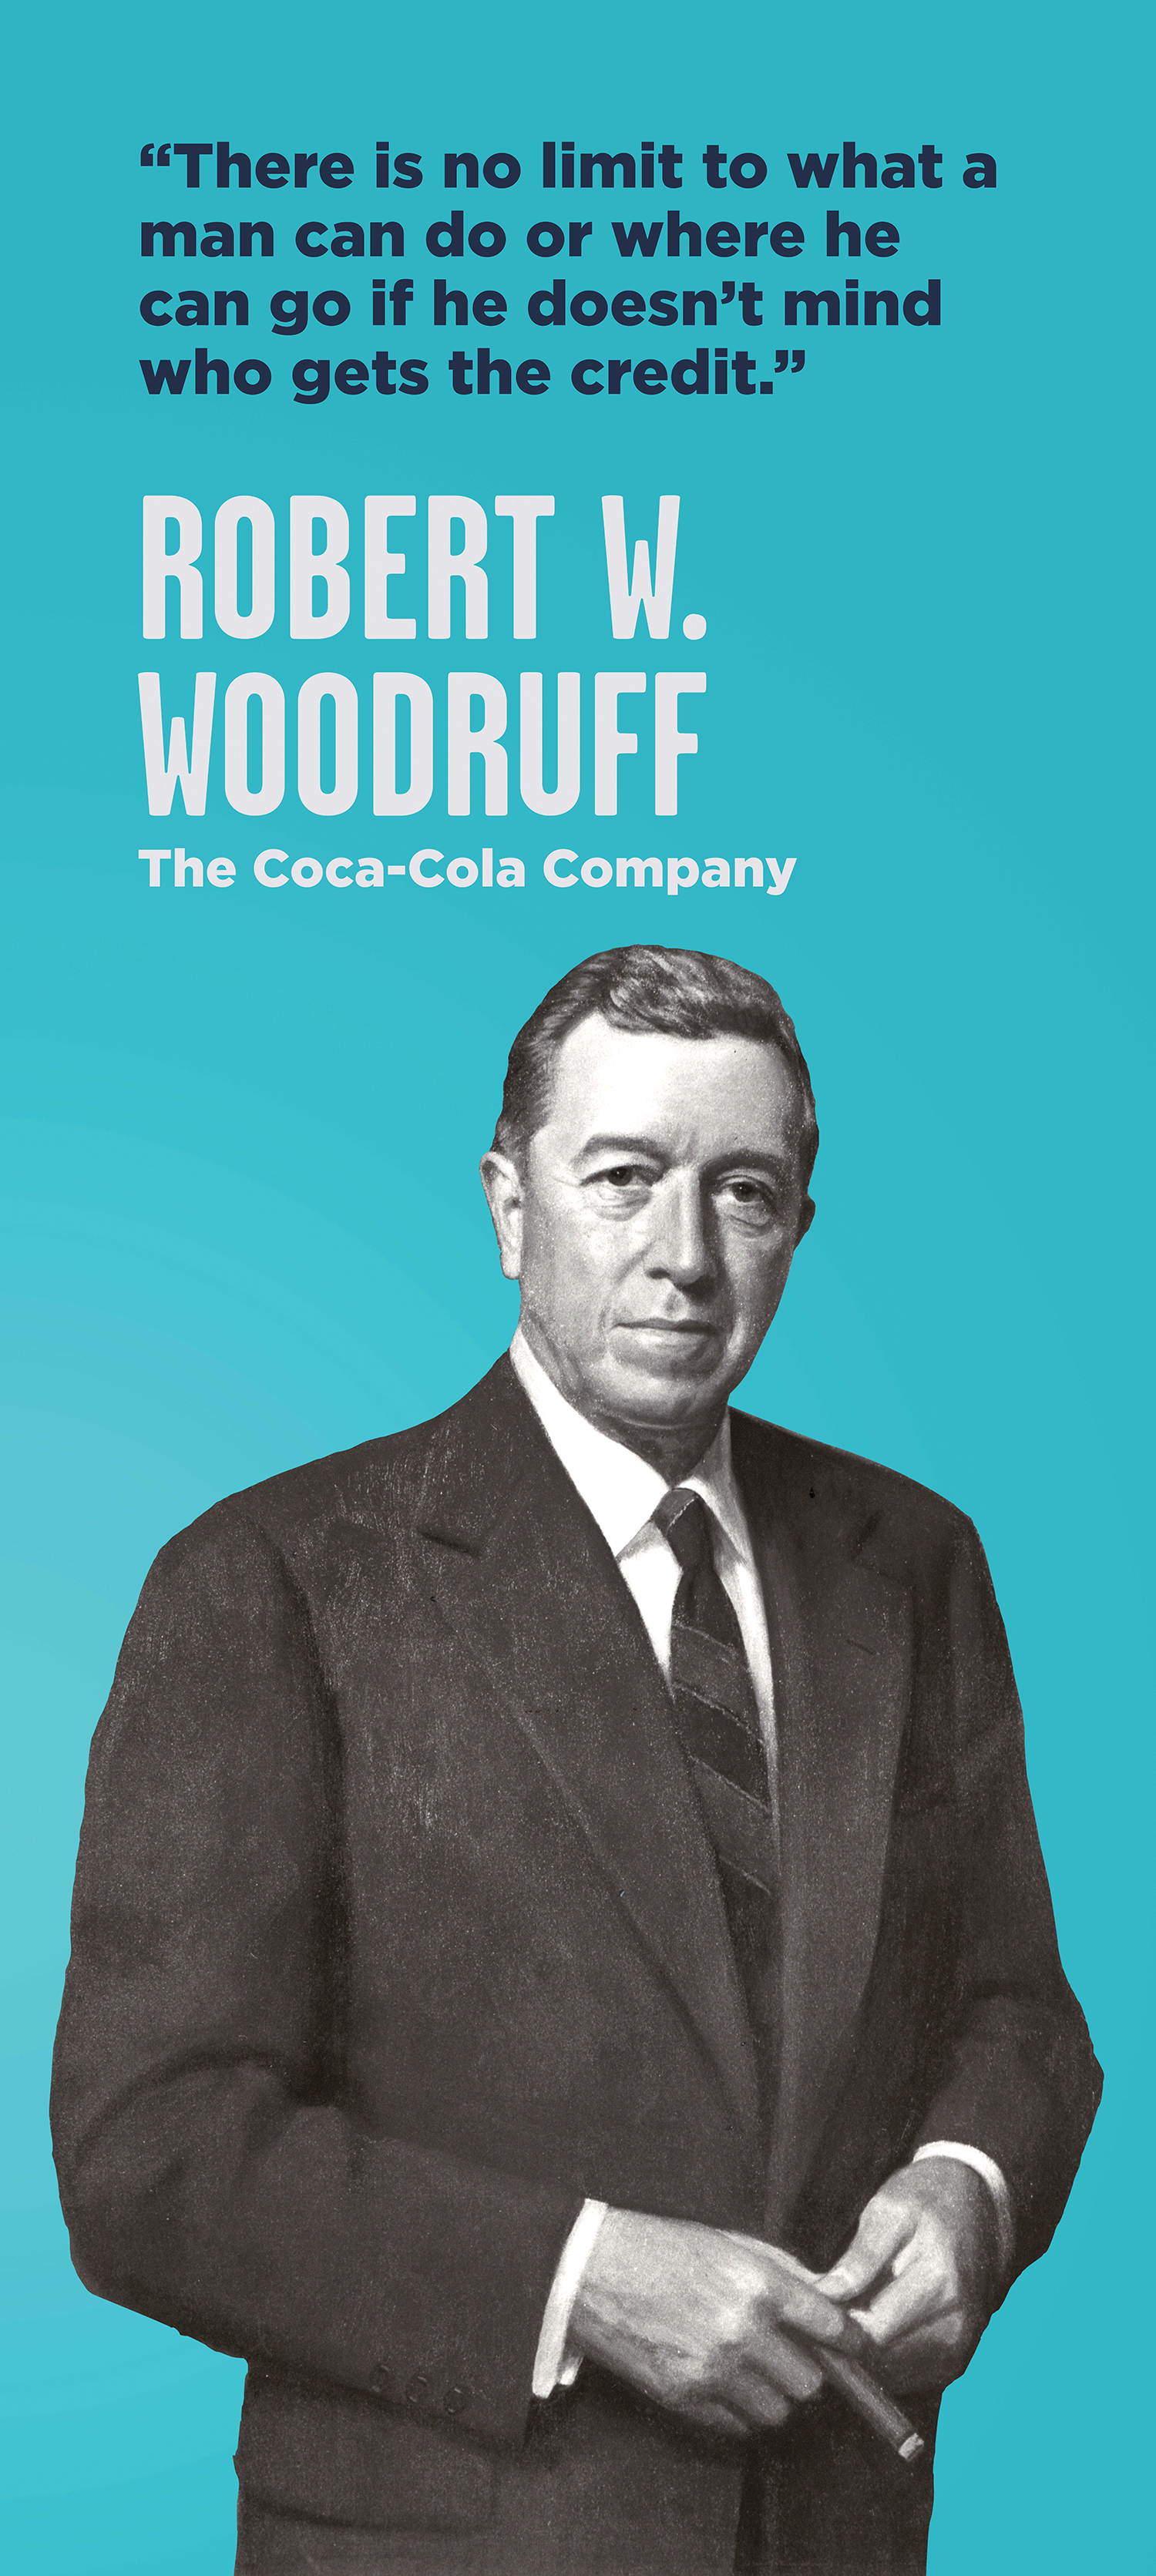 robert_woodruff.jpg